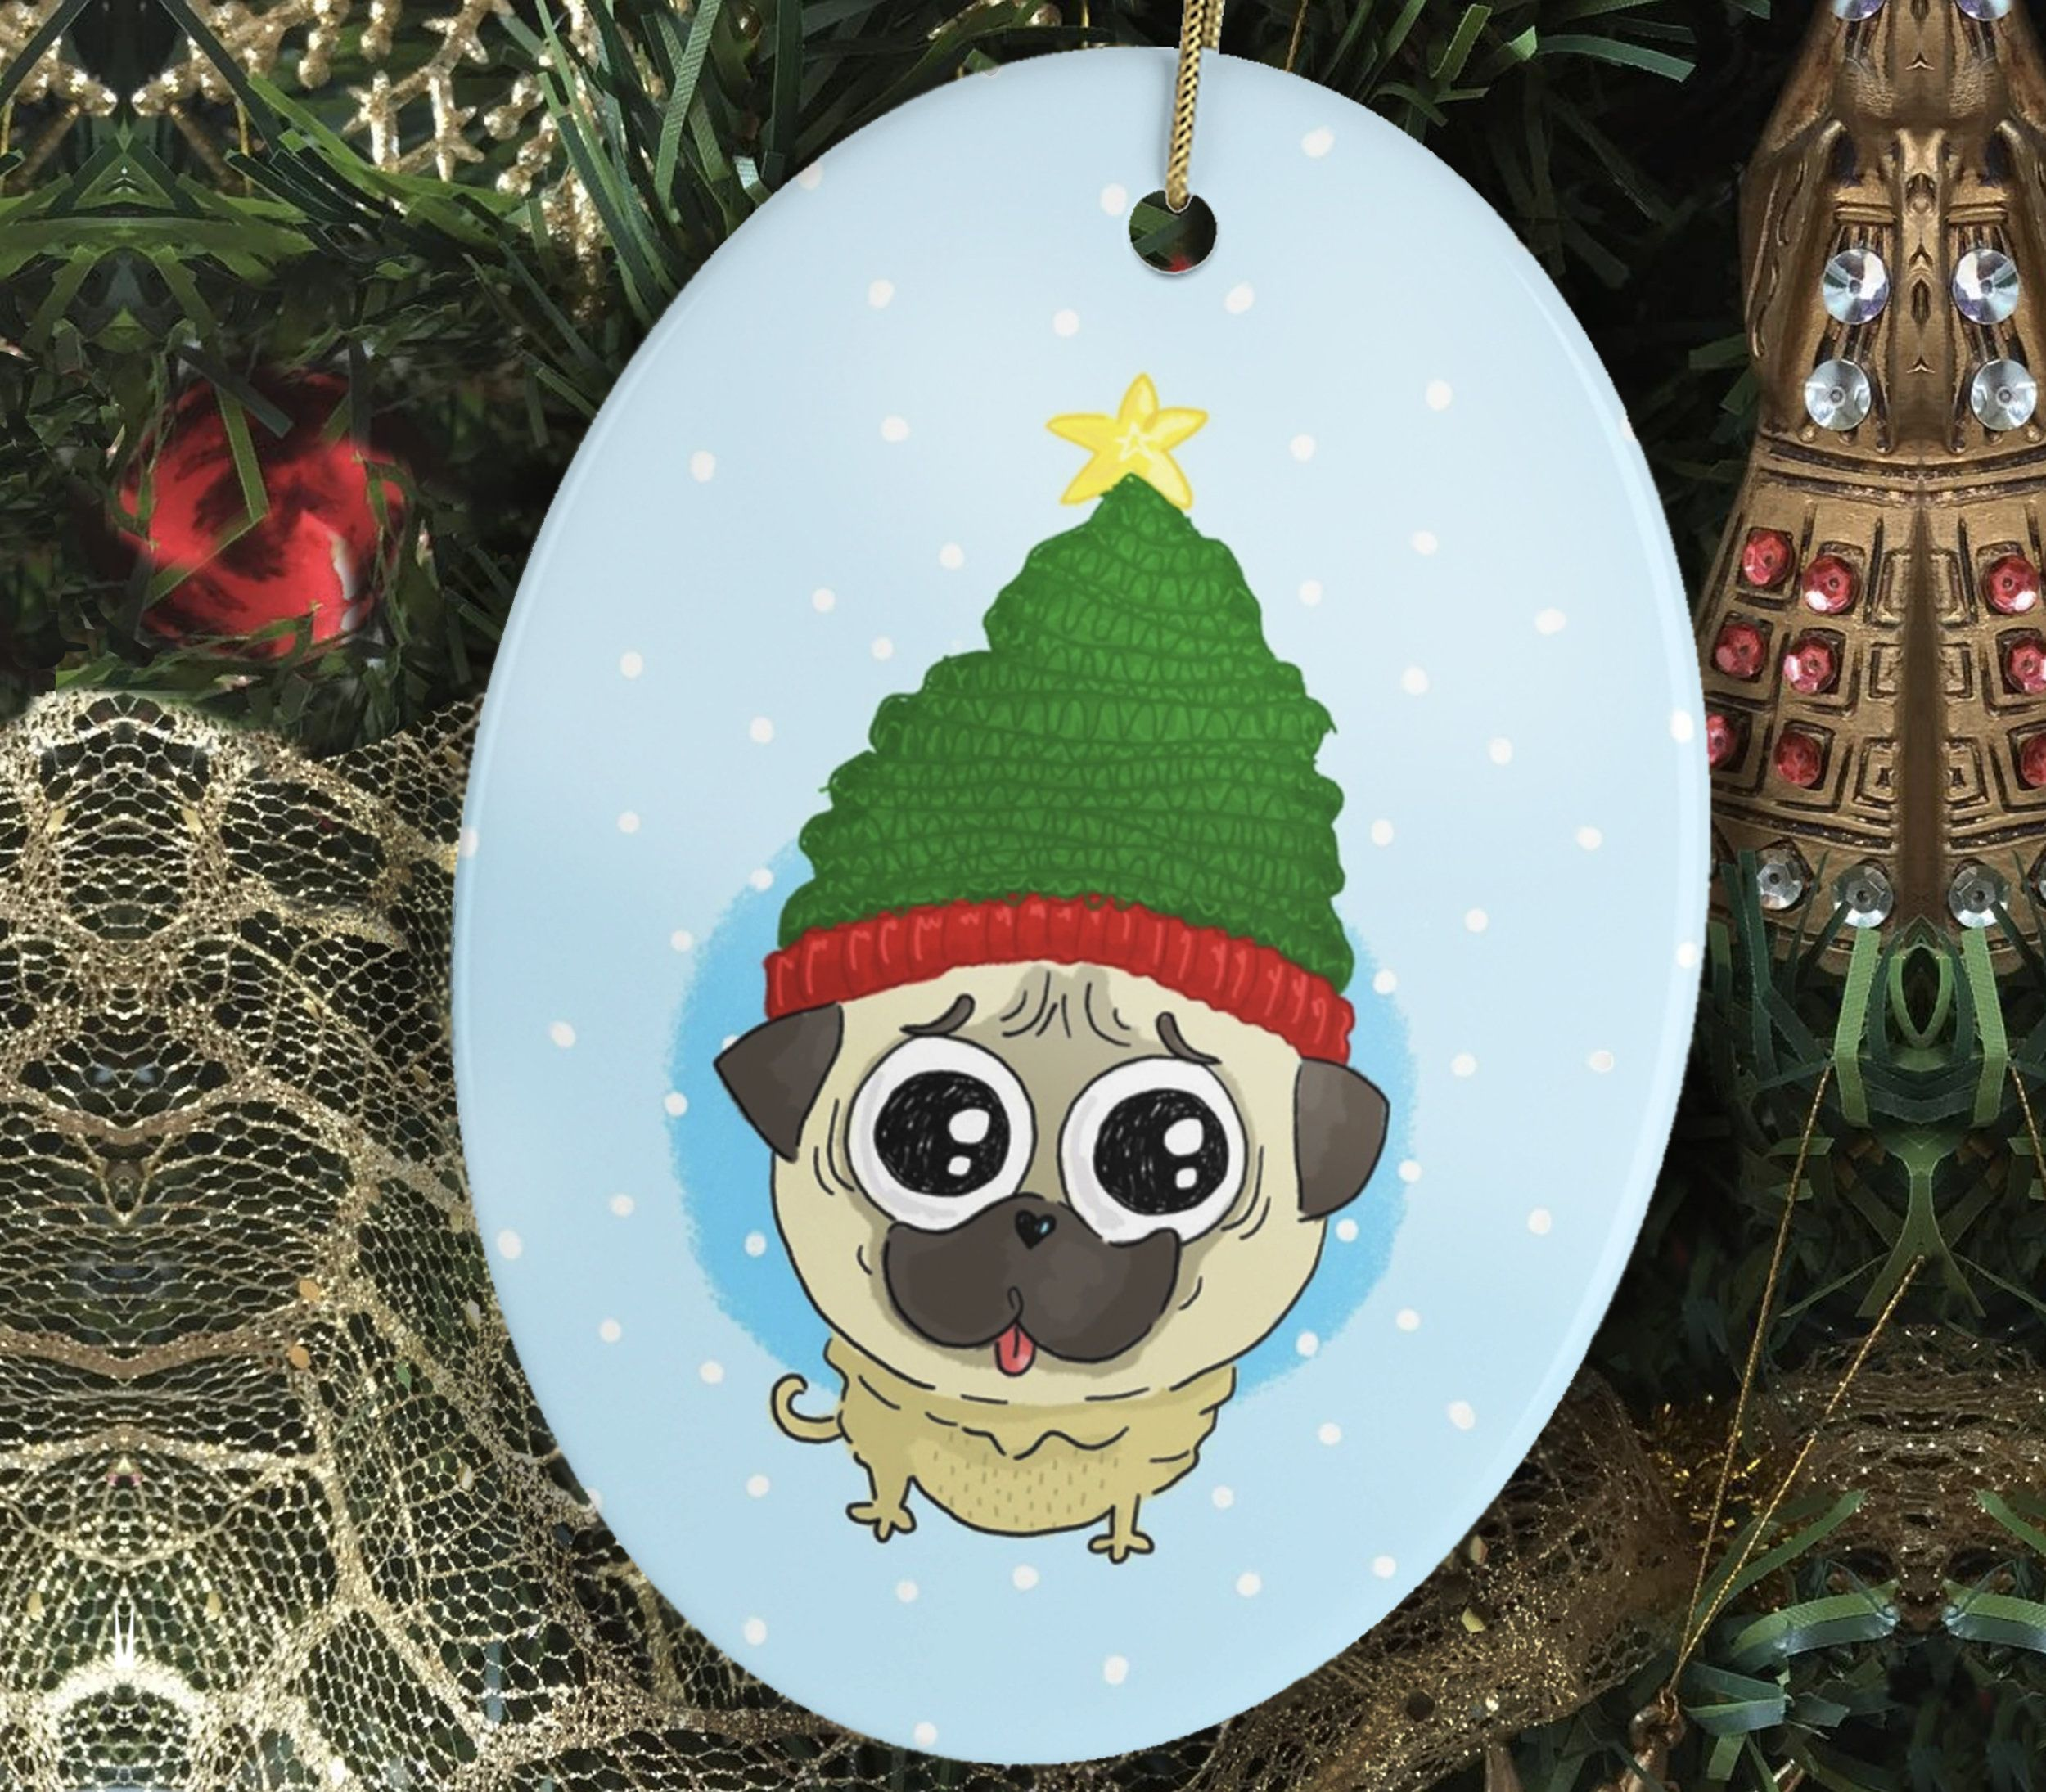 Pug Dog Ceramic Ornament, Christmas Puppy Ornament, Holiday Pet Gift for Dog Lover, Dog Gift